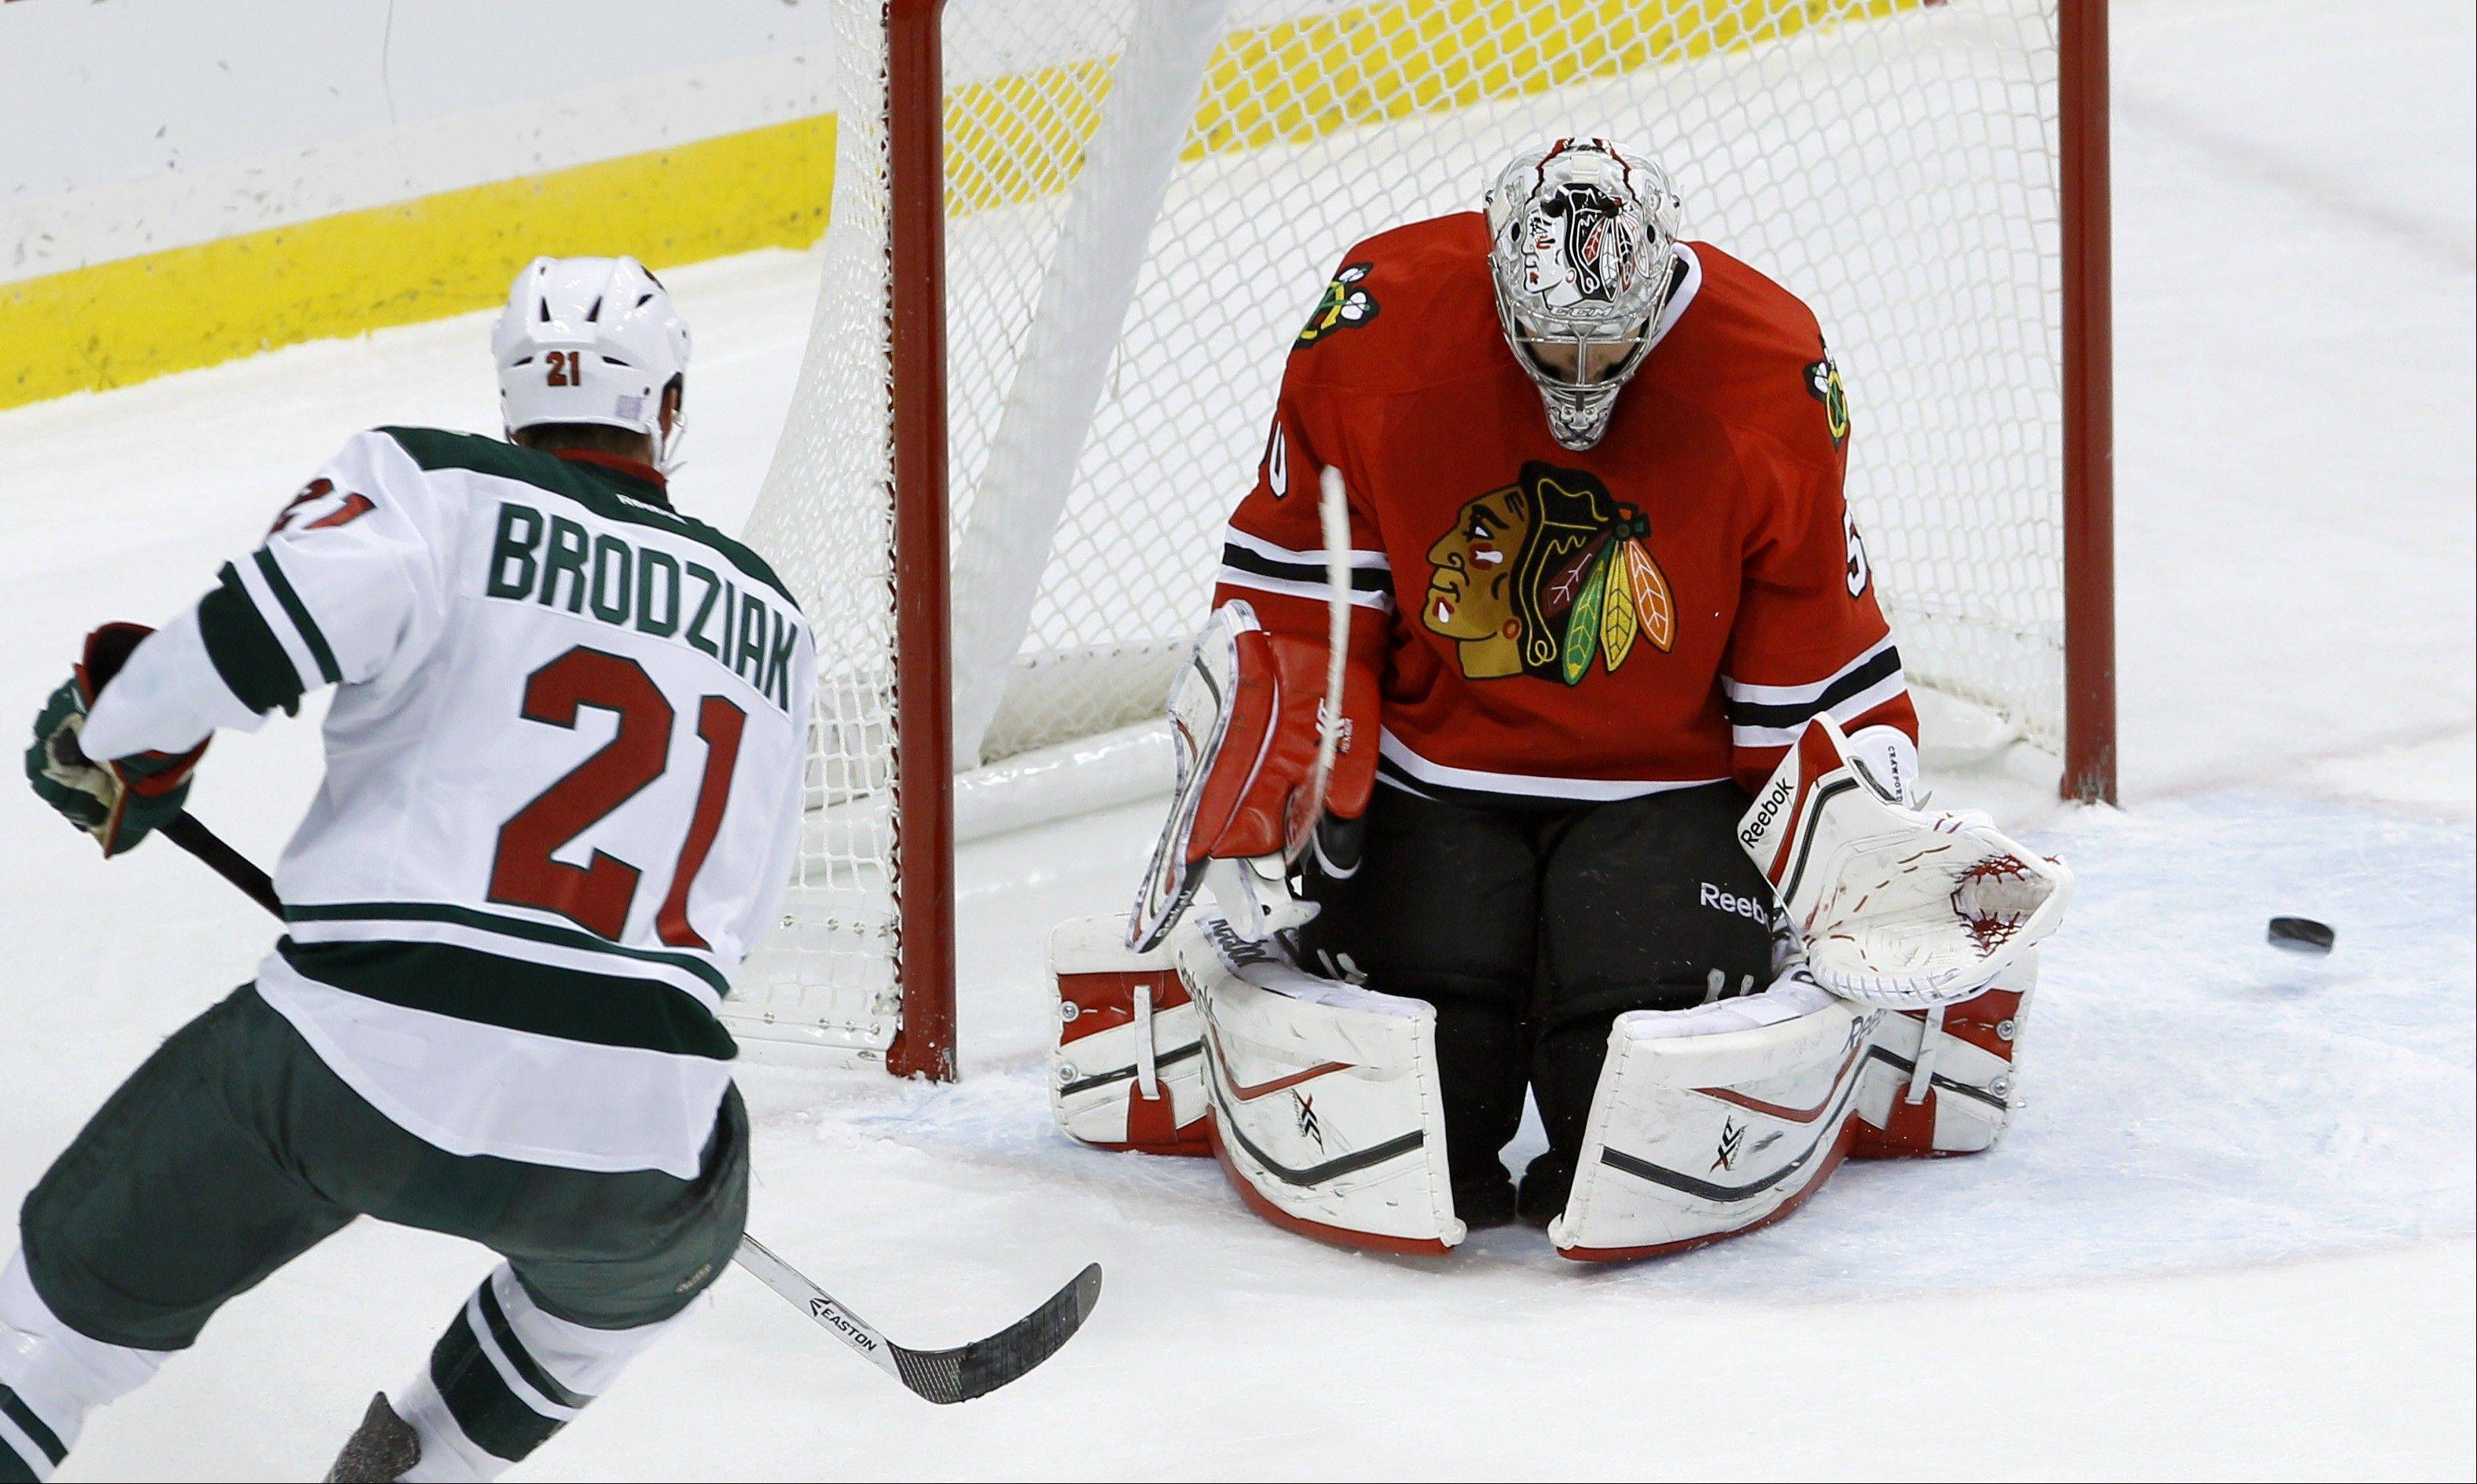 Chicago Blackhawks goalie Corey Crawford, right, deflects a shot by Minnesota Wild center Kyle Brodziak (21) during the first period of an NHL hockey game in St. Paul , Minn., Monday, Oct. 28, 2013.